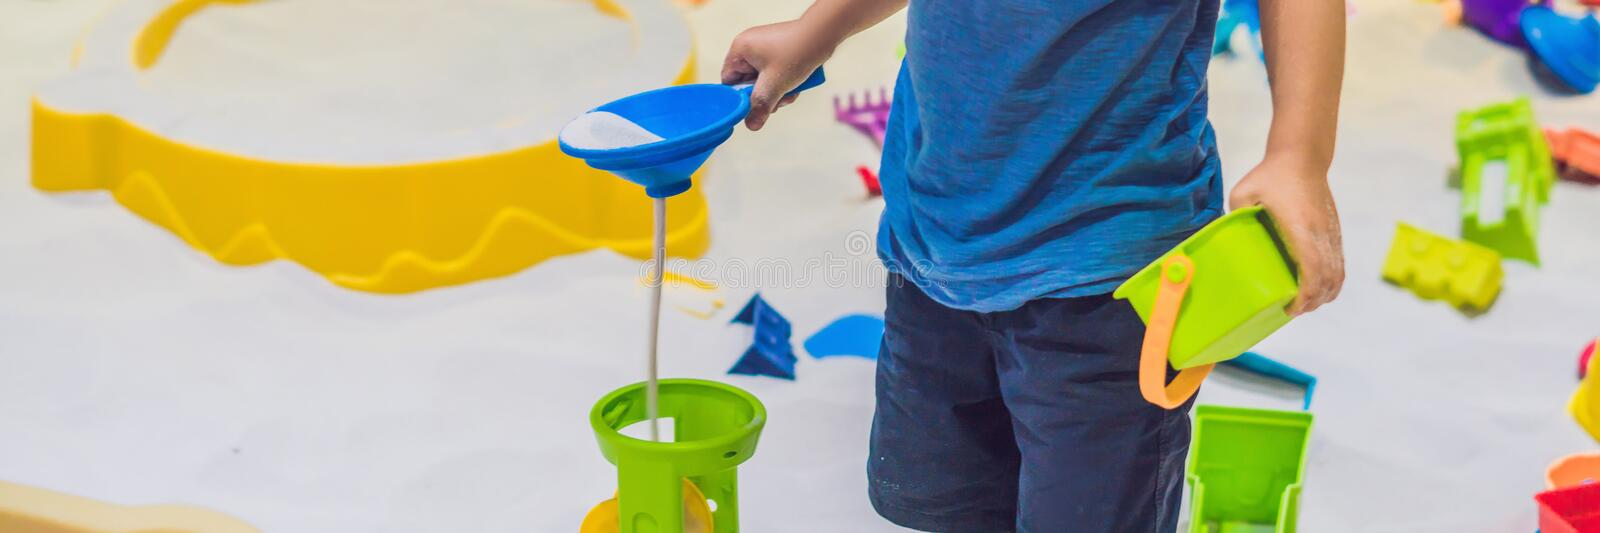 BANNER Boy playing with sand in preschool. The development of fine motor concept. Creativity Game concept long format. BANNER Boy playing with sand in preschool stock images